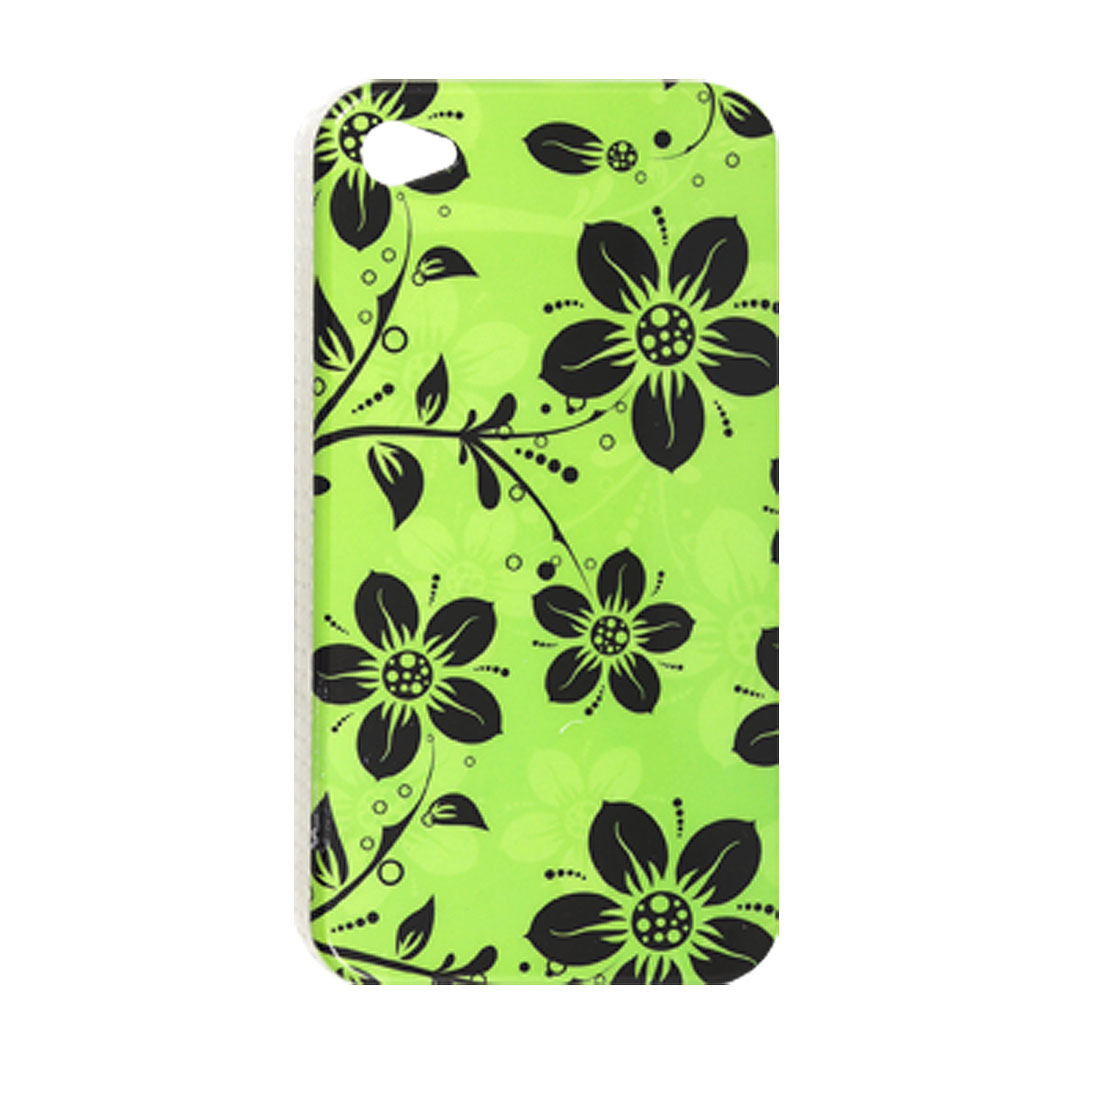 Antislip Side IMD Floral Print Black Green Back Case for iPhone 4 4G